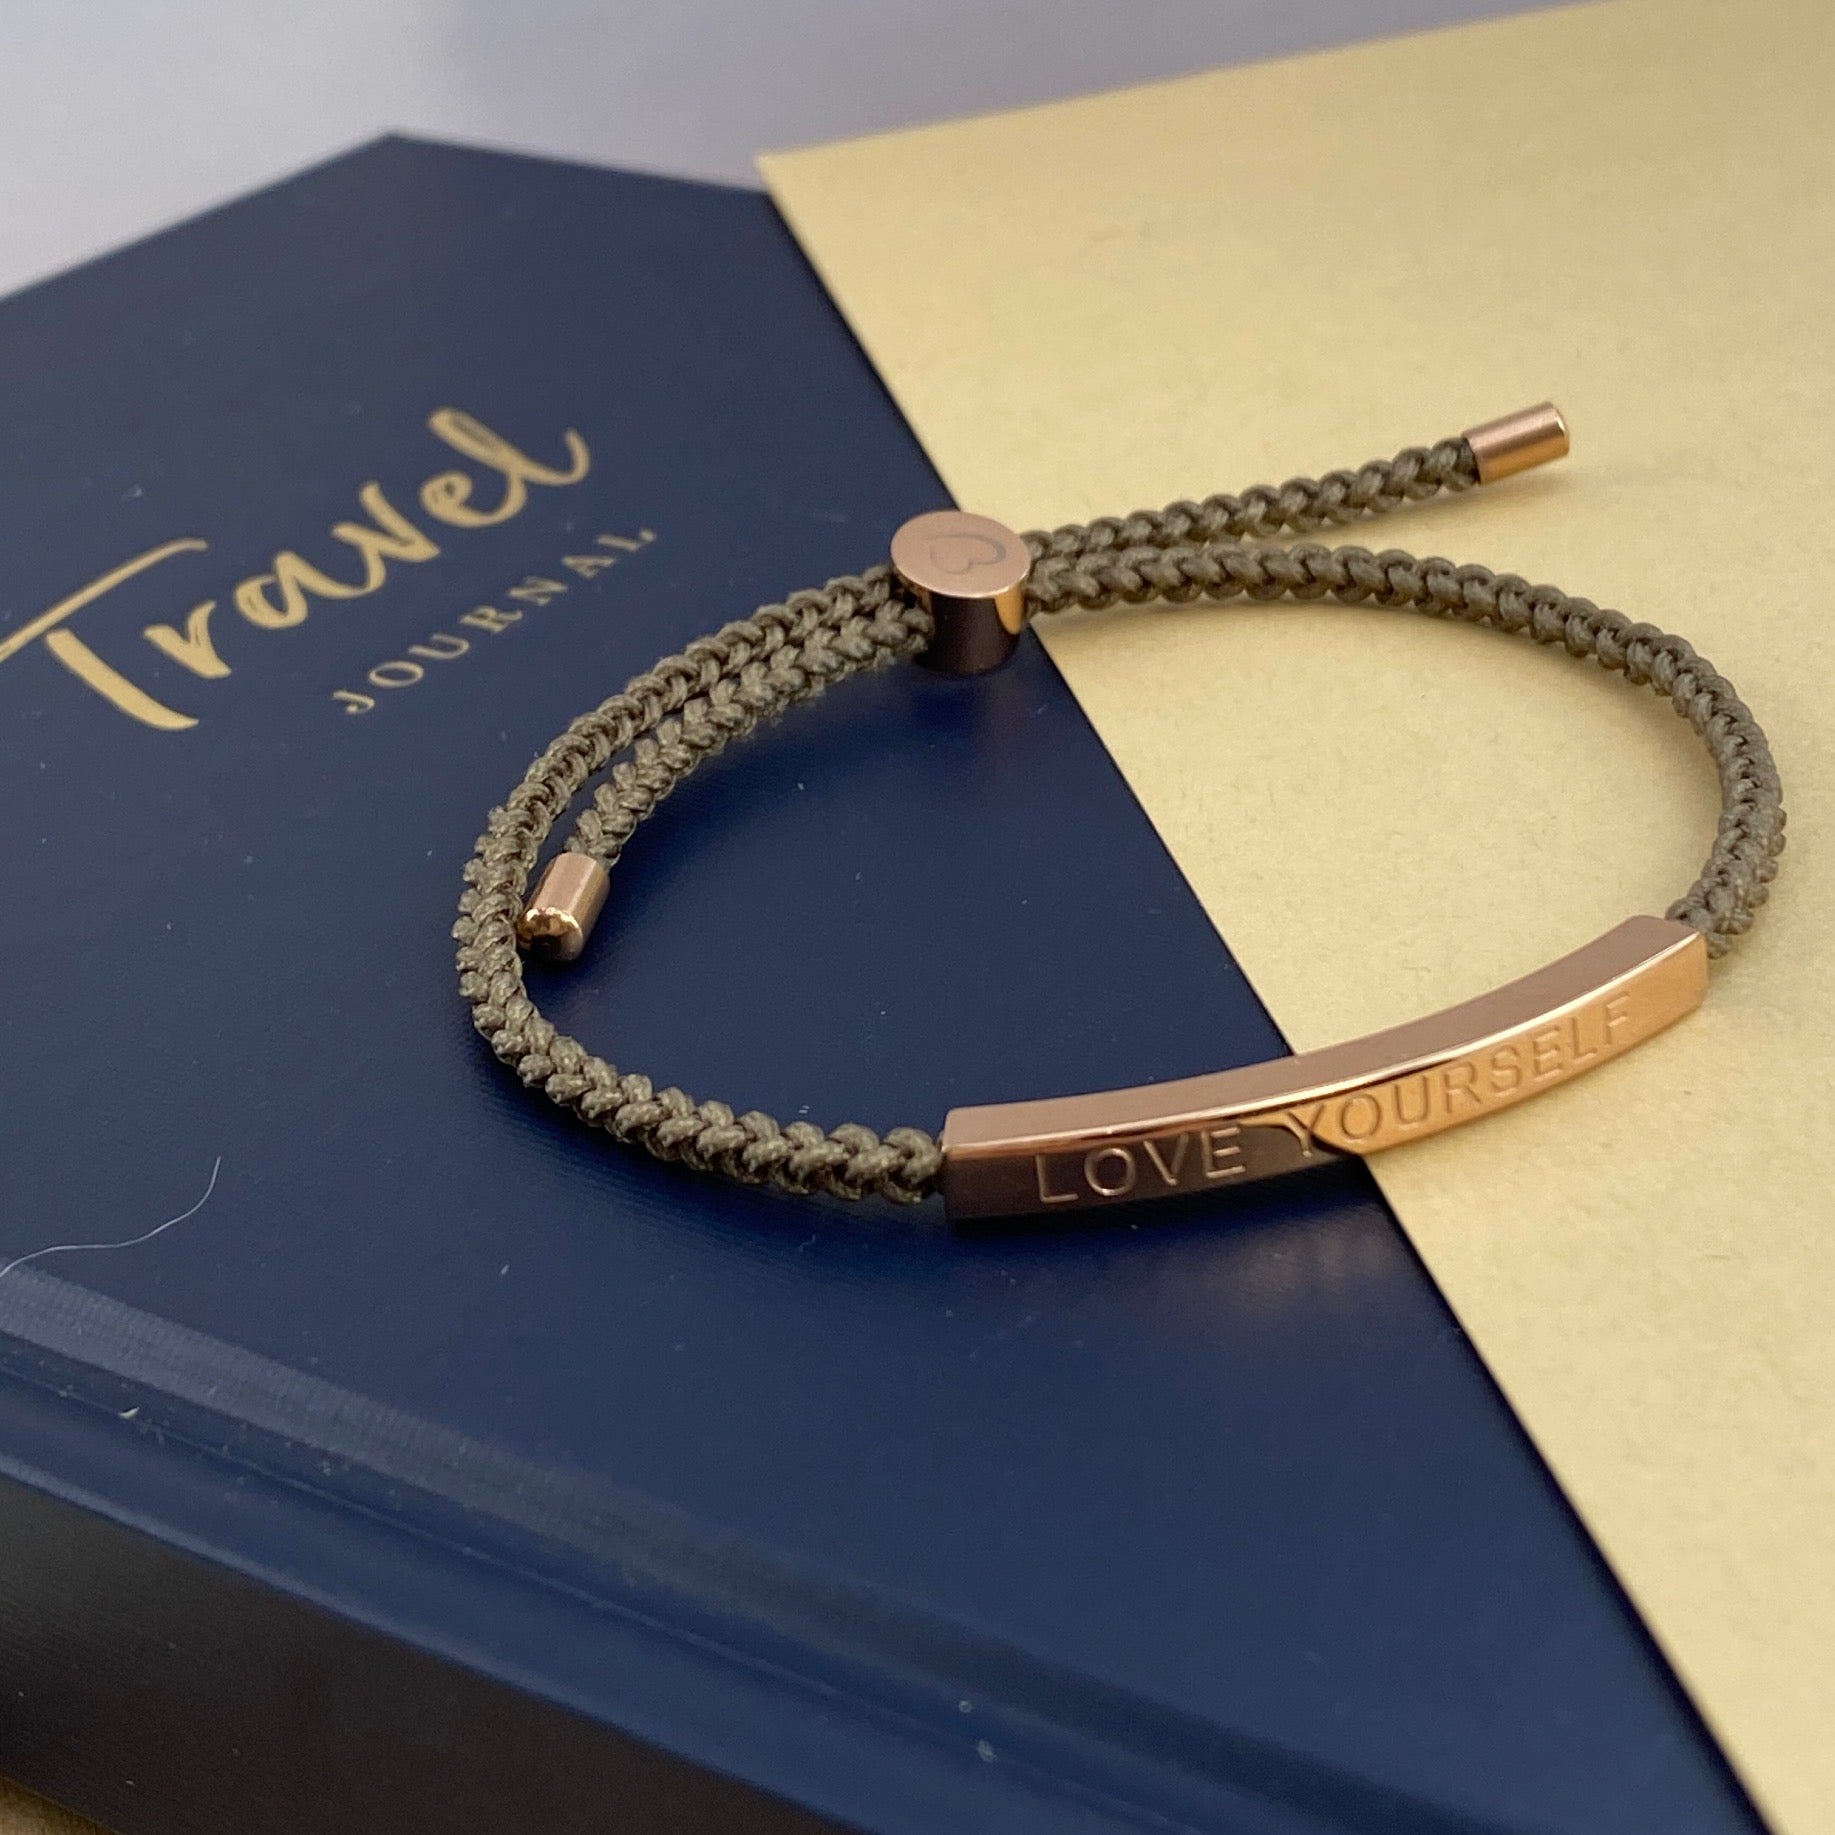 Love Yourself Bracelet - Personal Reminder